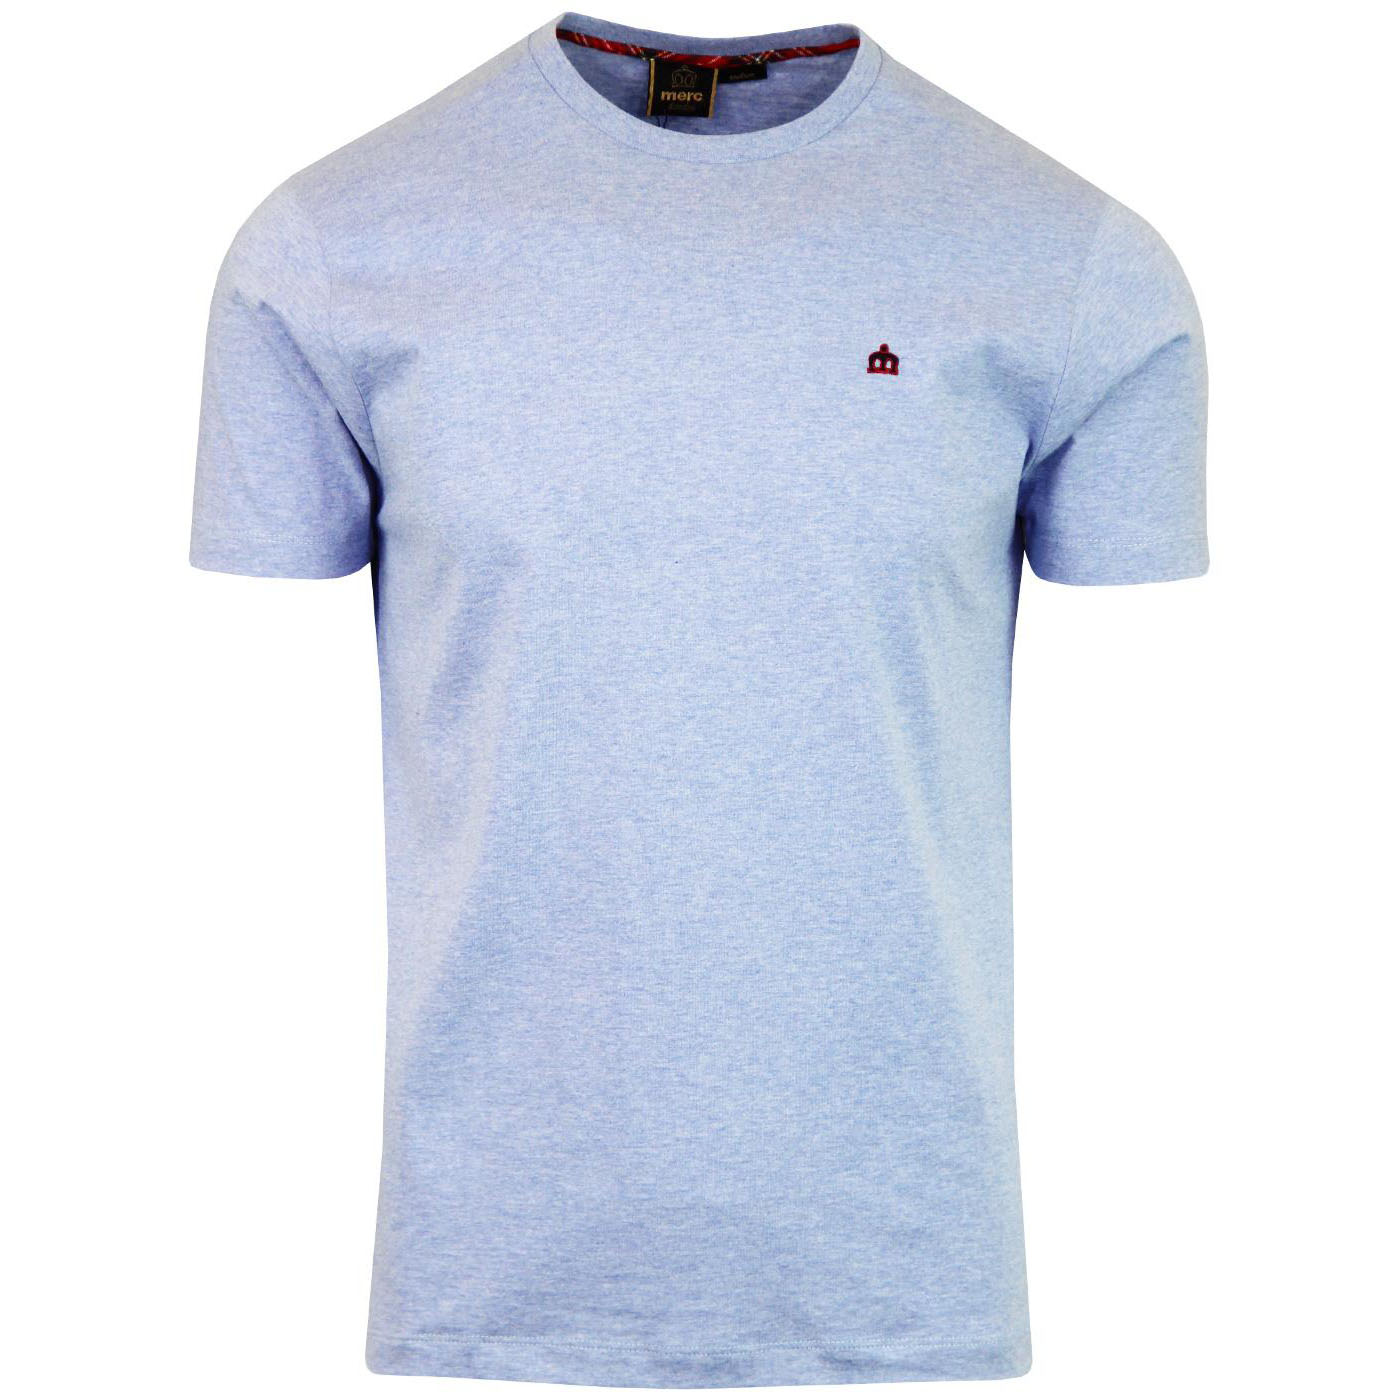 Keyport Dusty Blue T-shirt - Merc